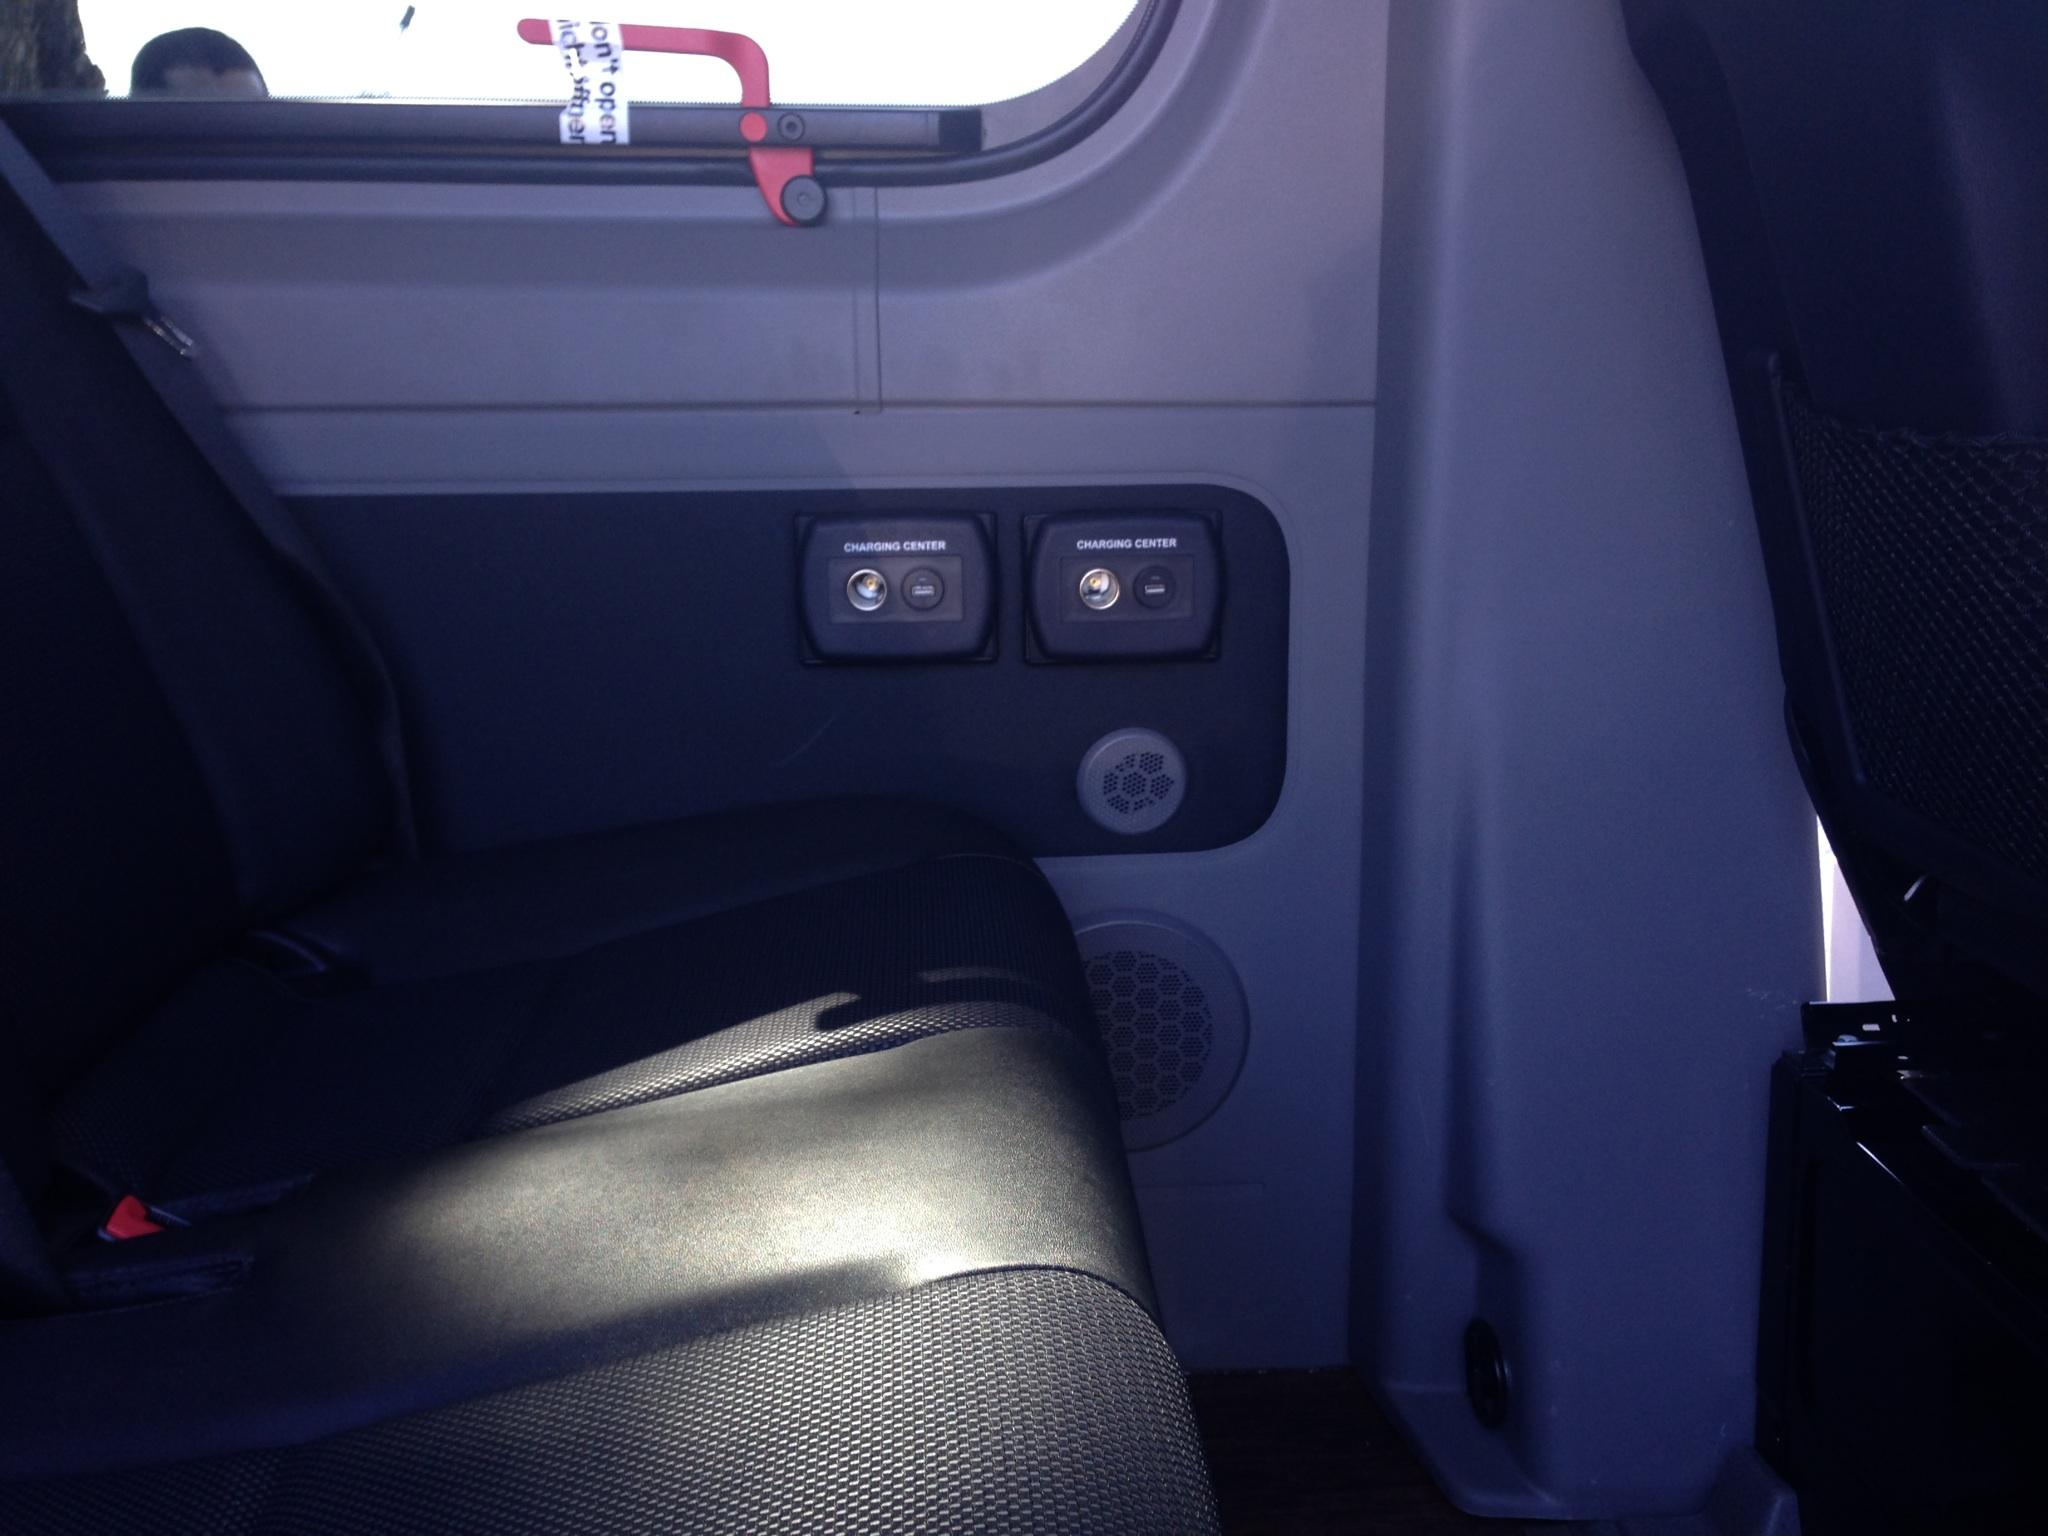 Mercedes Sprinter - Charging Ports